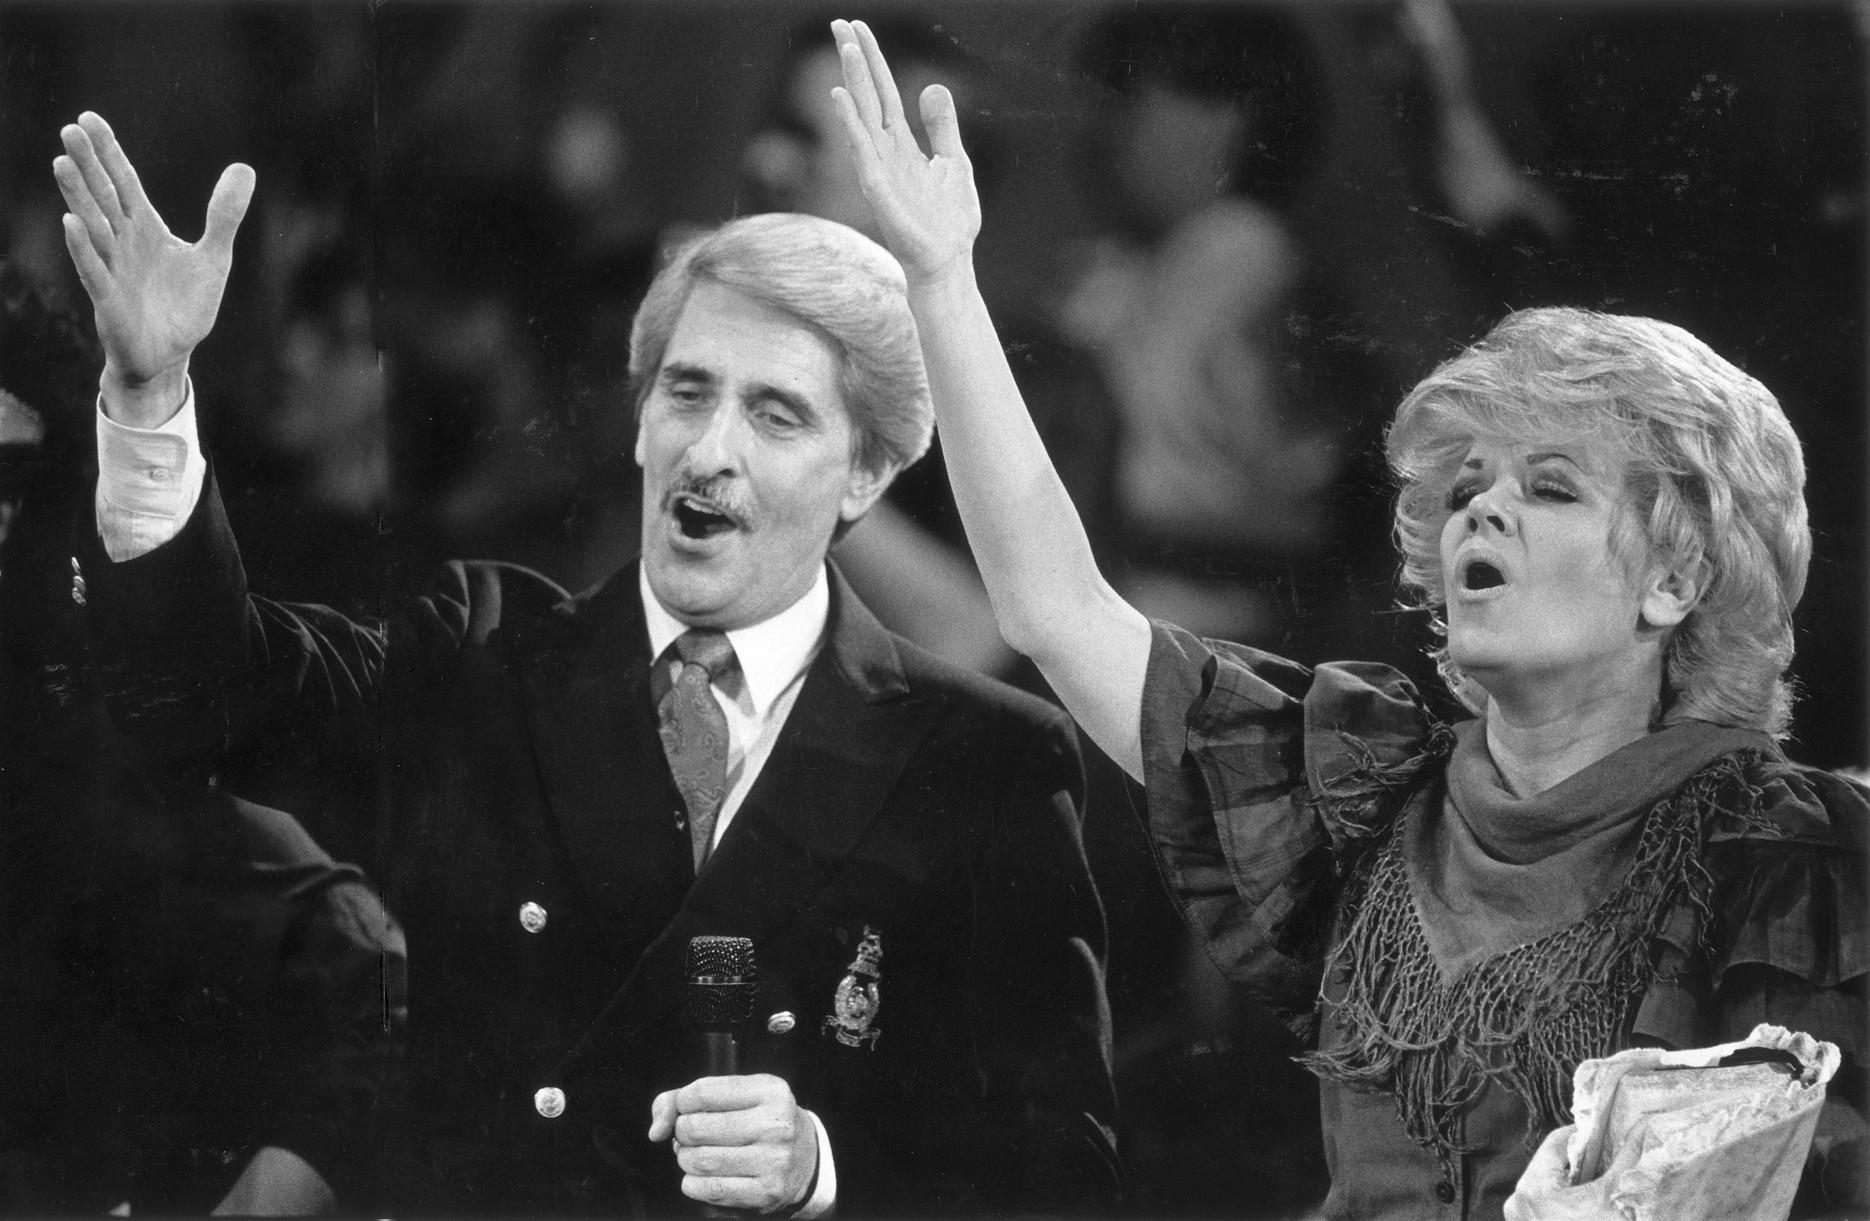 Paul and Jan Crouch during the taping of one of their